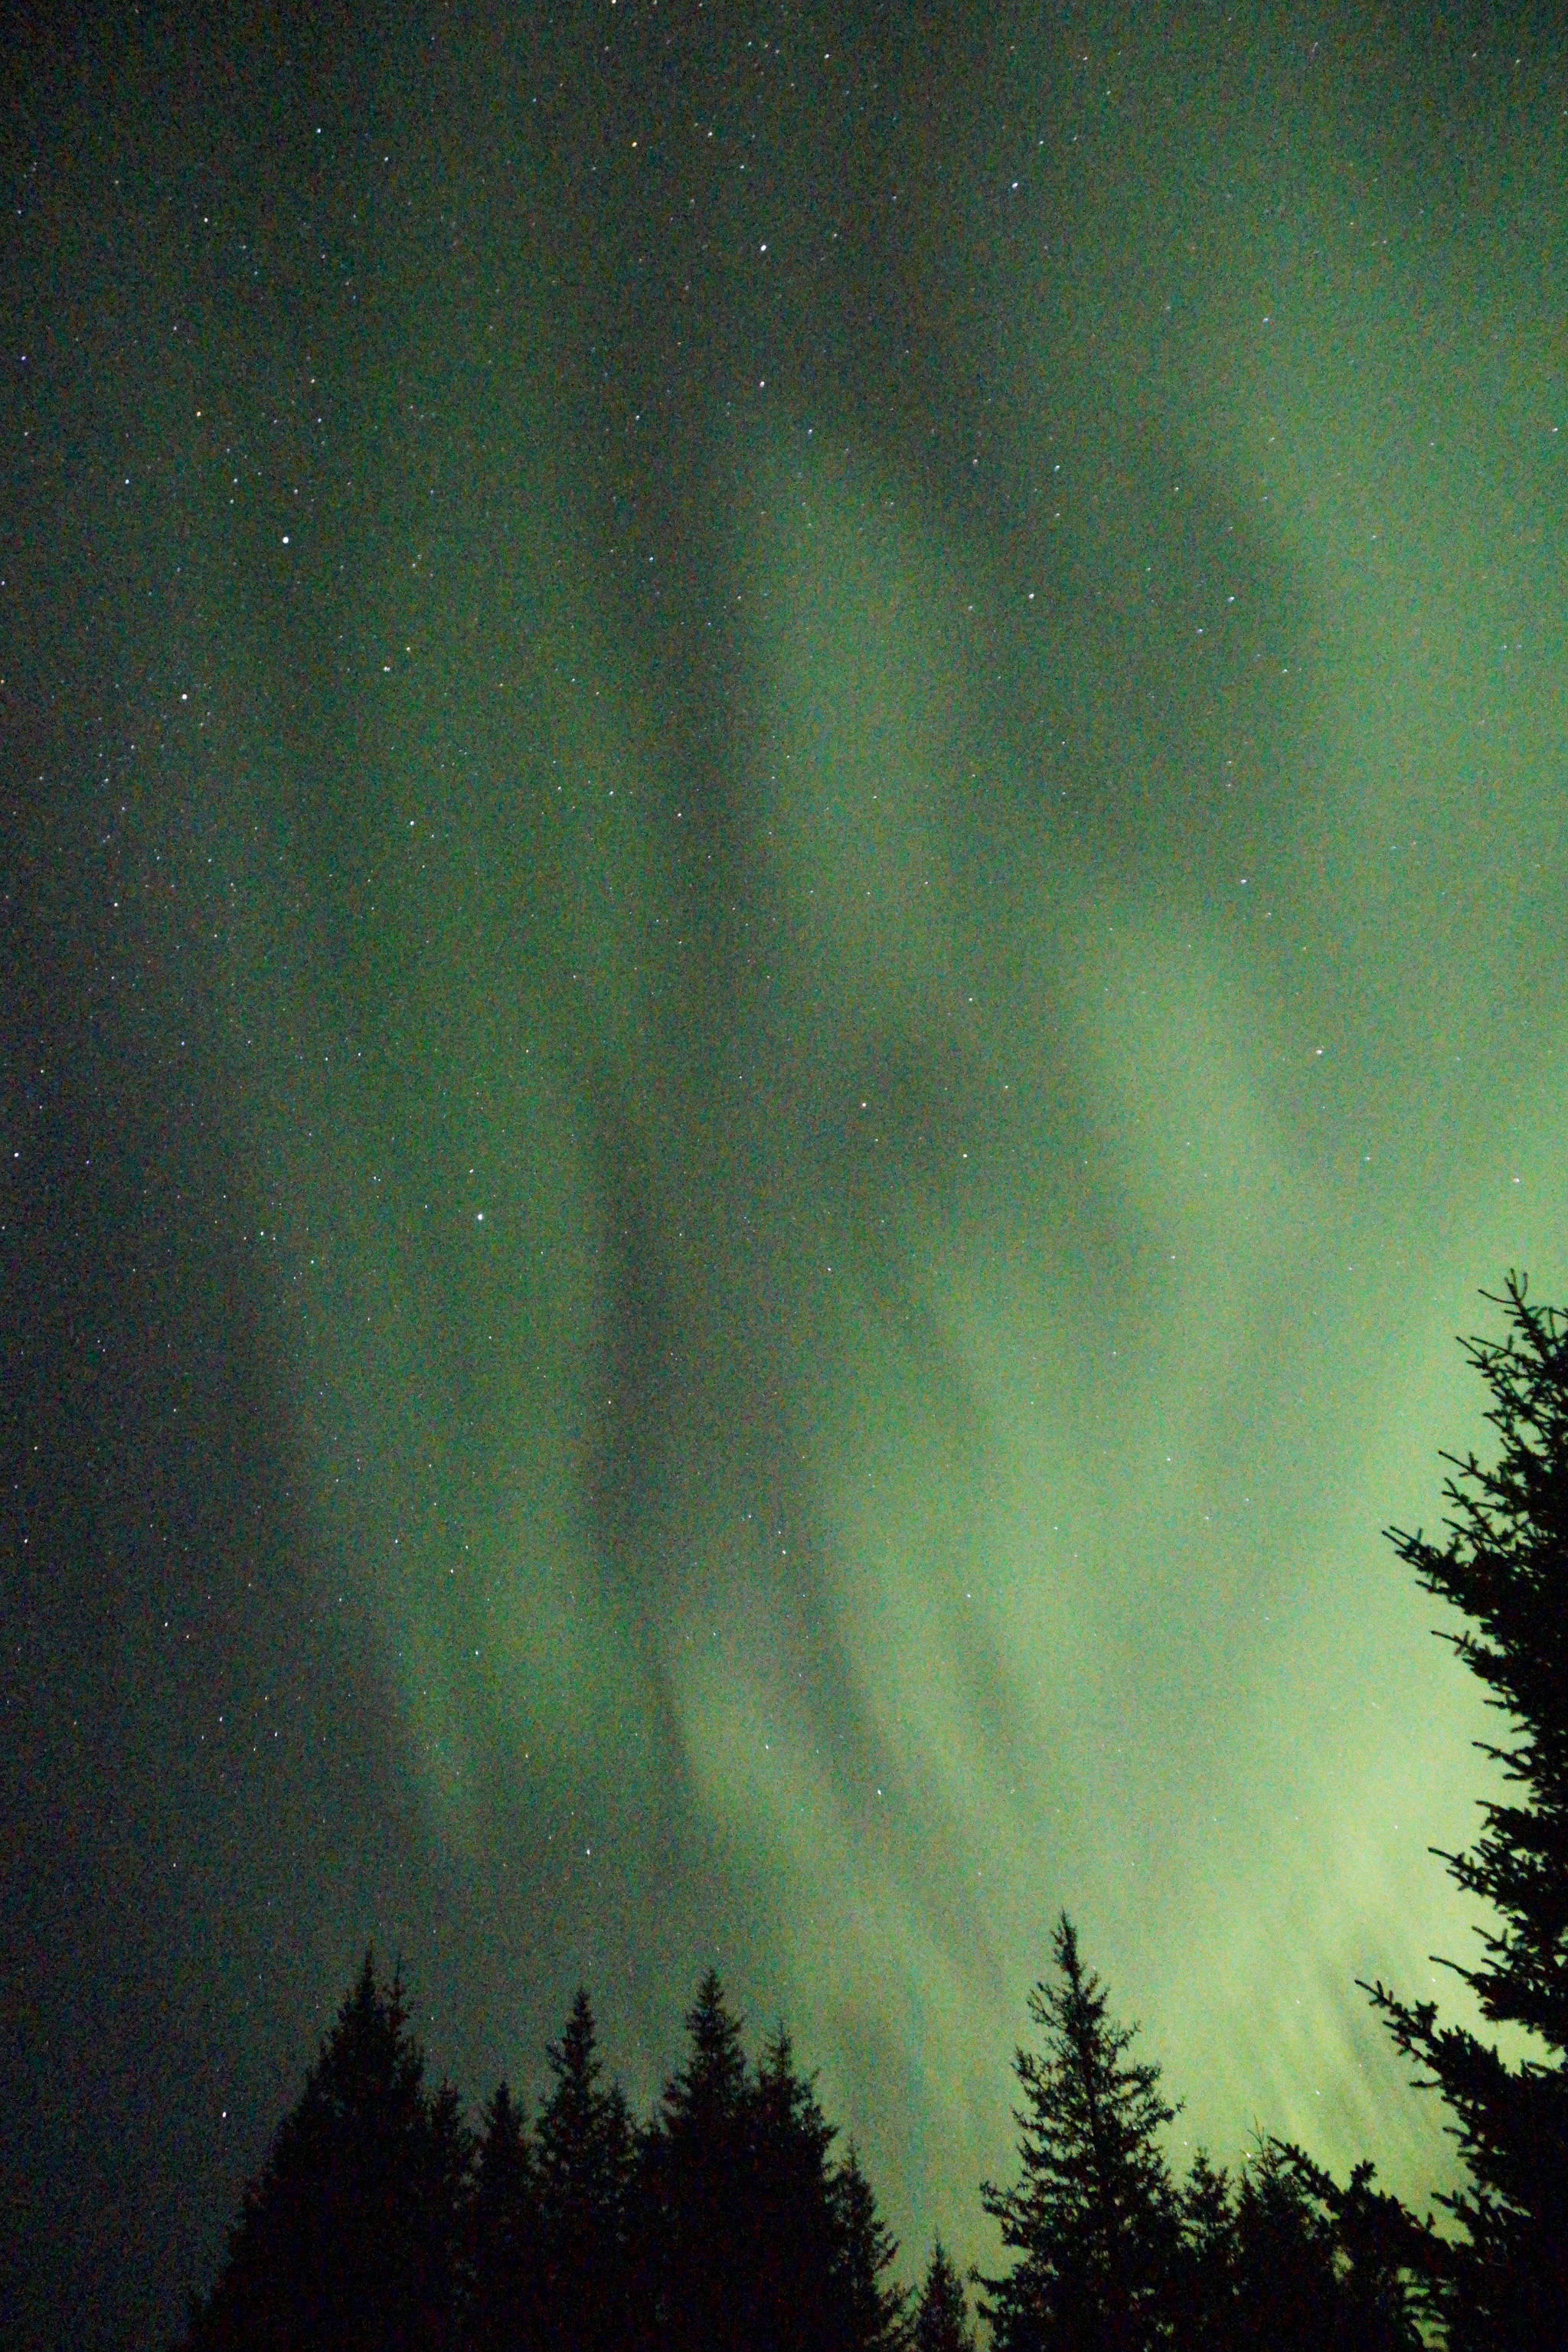 Northern lights glow about 2:30 a.m. Tuesday, Sept. 11, 2018, over Diamond Ridge near Homer, Alaska. At times the aurora spread in a long arc from east to west. (Photo by Michael Armstrong/Homer News)